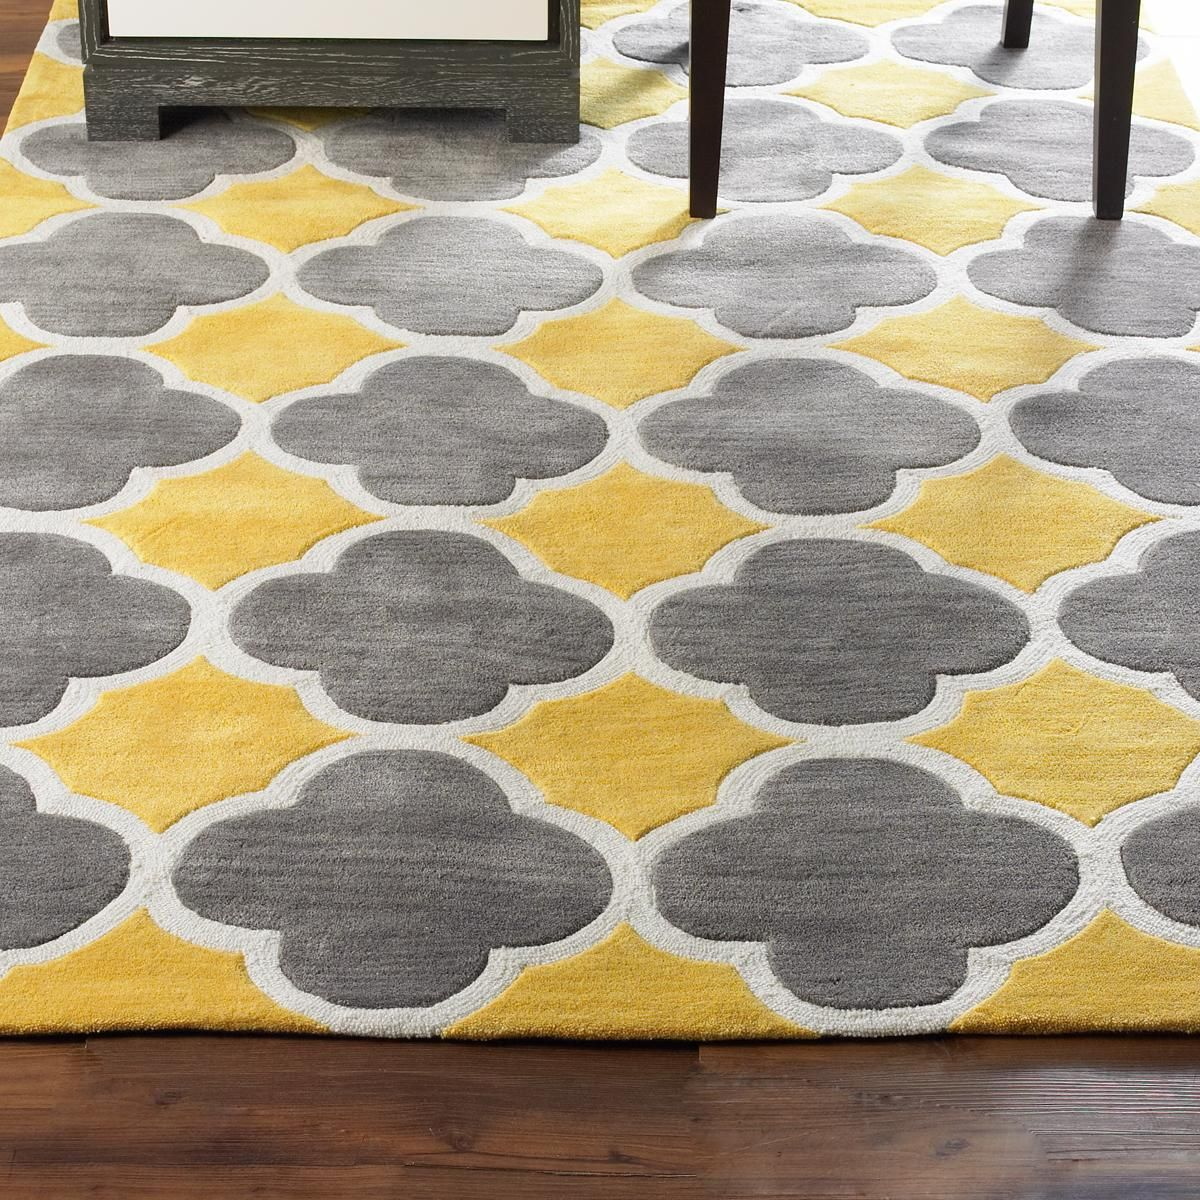 Cloverleaf Quatrefoil Rug Blue And Yellow Bedroom Ideasgrey